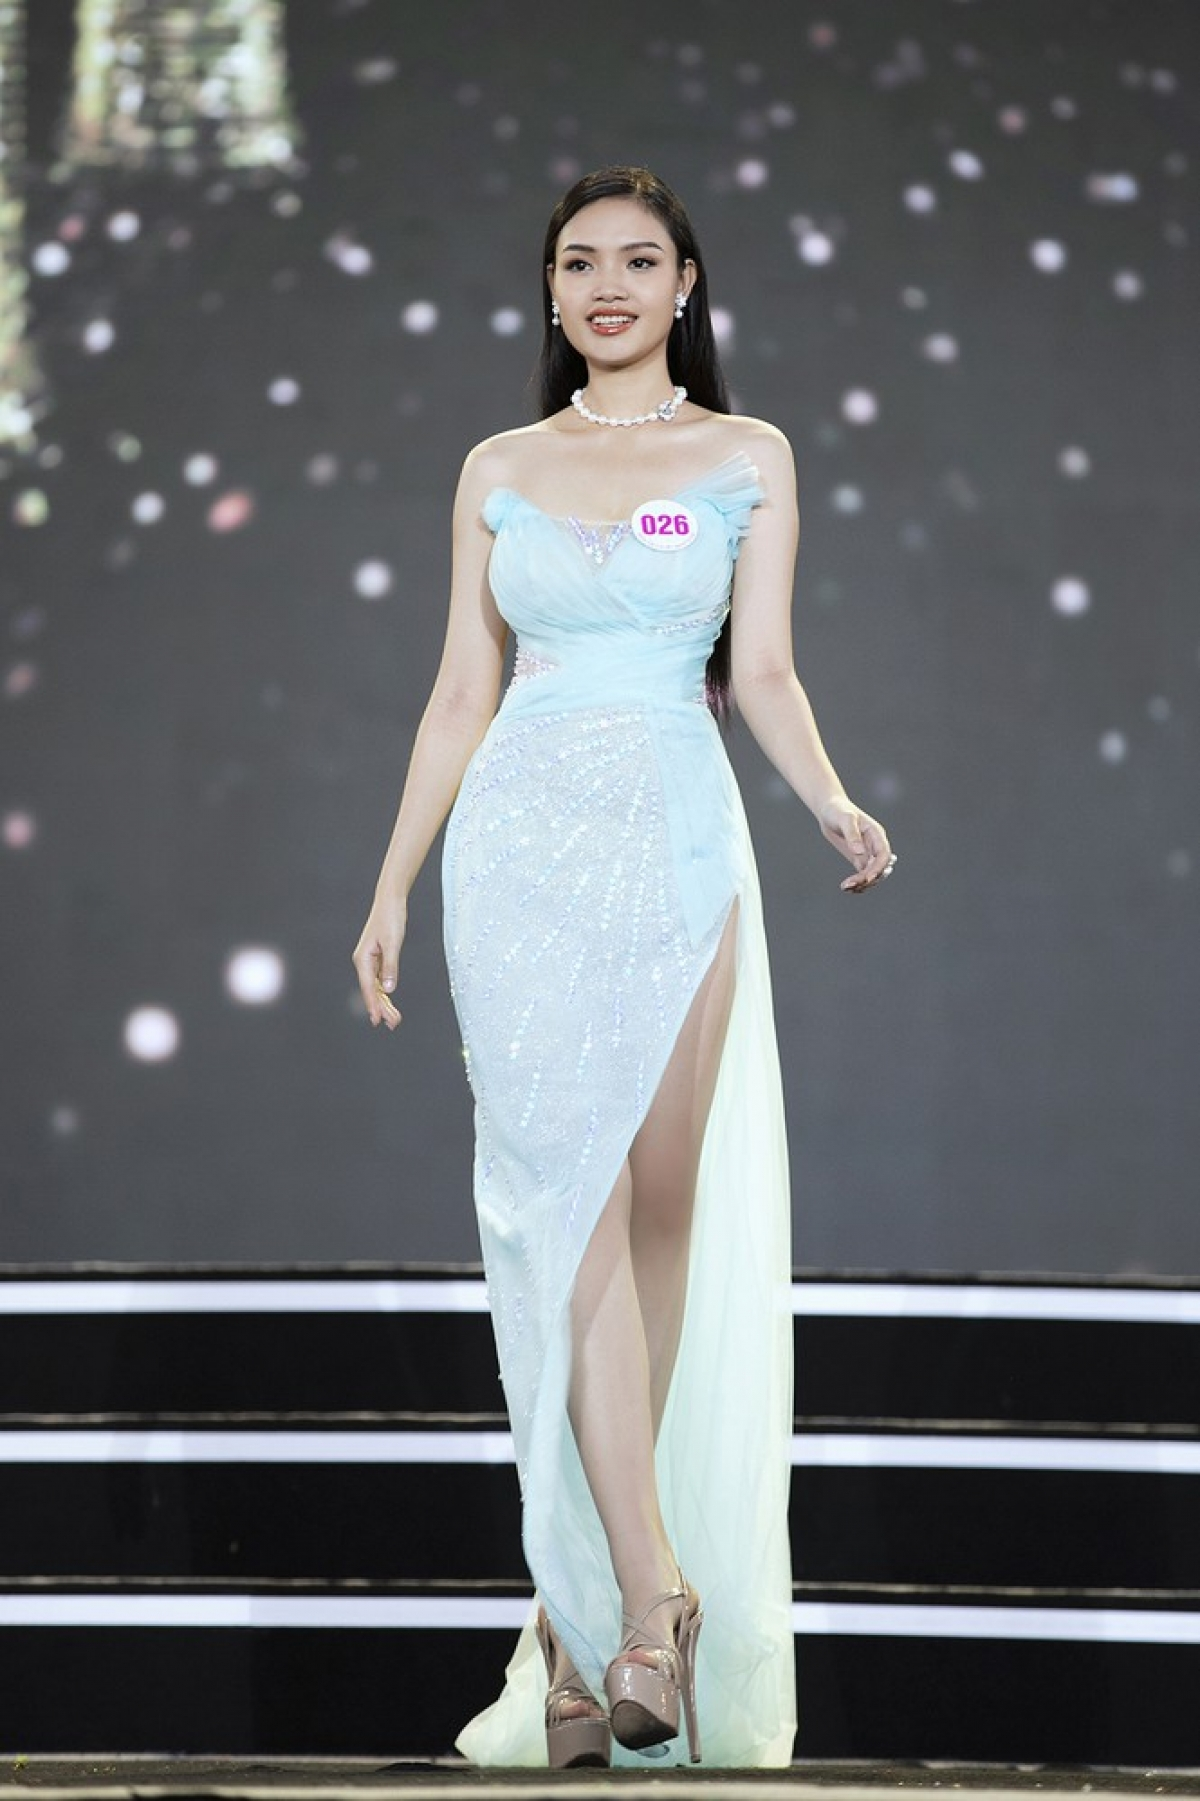 Nguyen Thi Phuong comes from Thanh Hoa province and is 1.73 metres tall with measurements of 84-60–90.